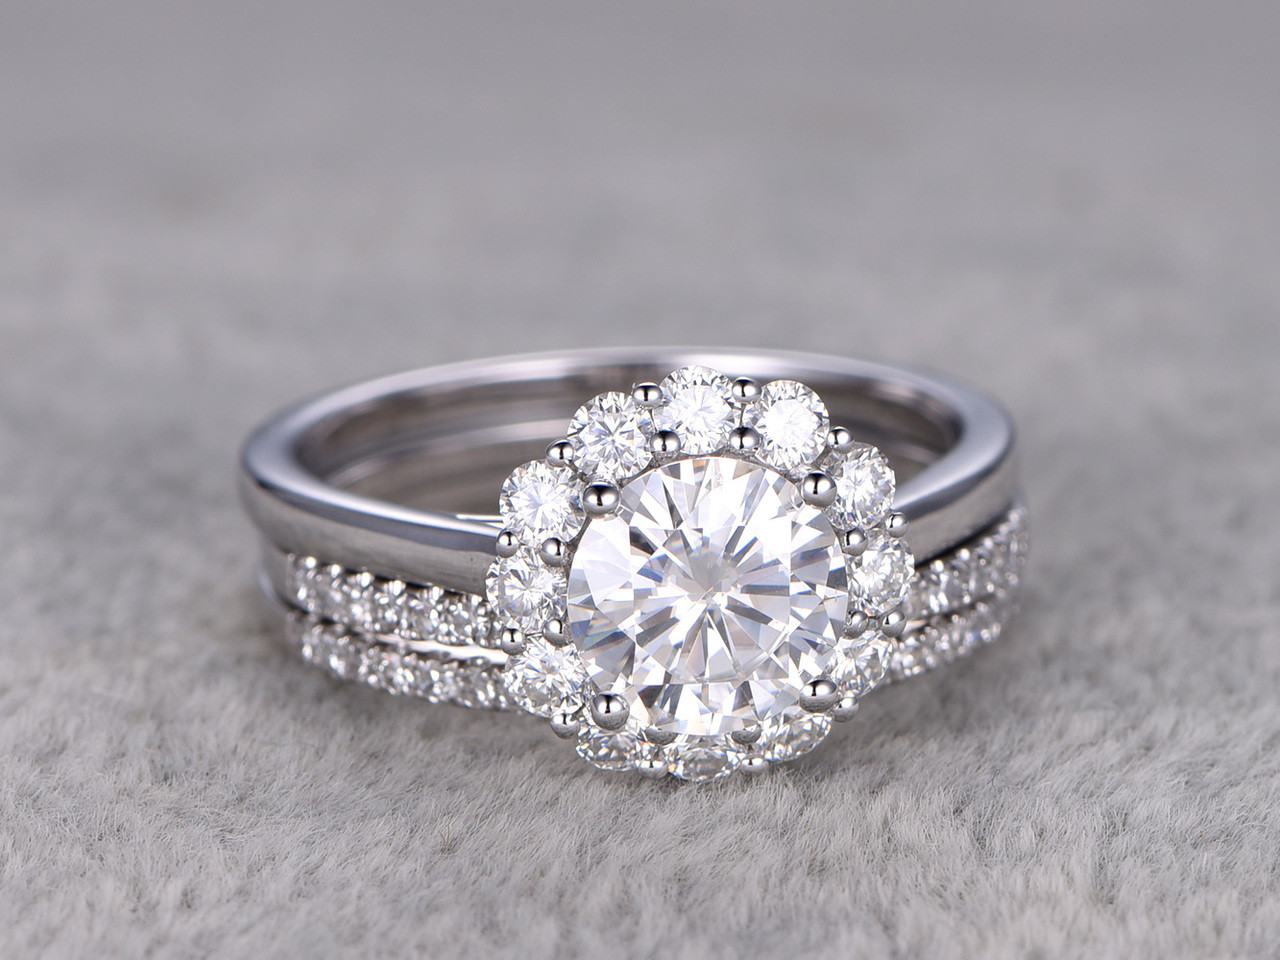 Flower Moissanite Wedding Ring Set Diamond Curved Matching Band White Gold Halo Thin Pave